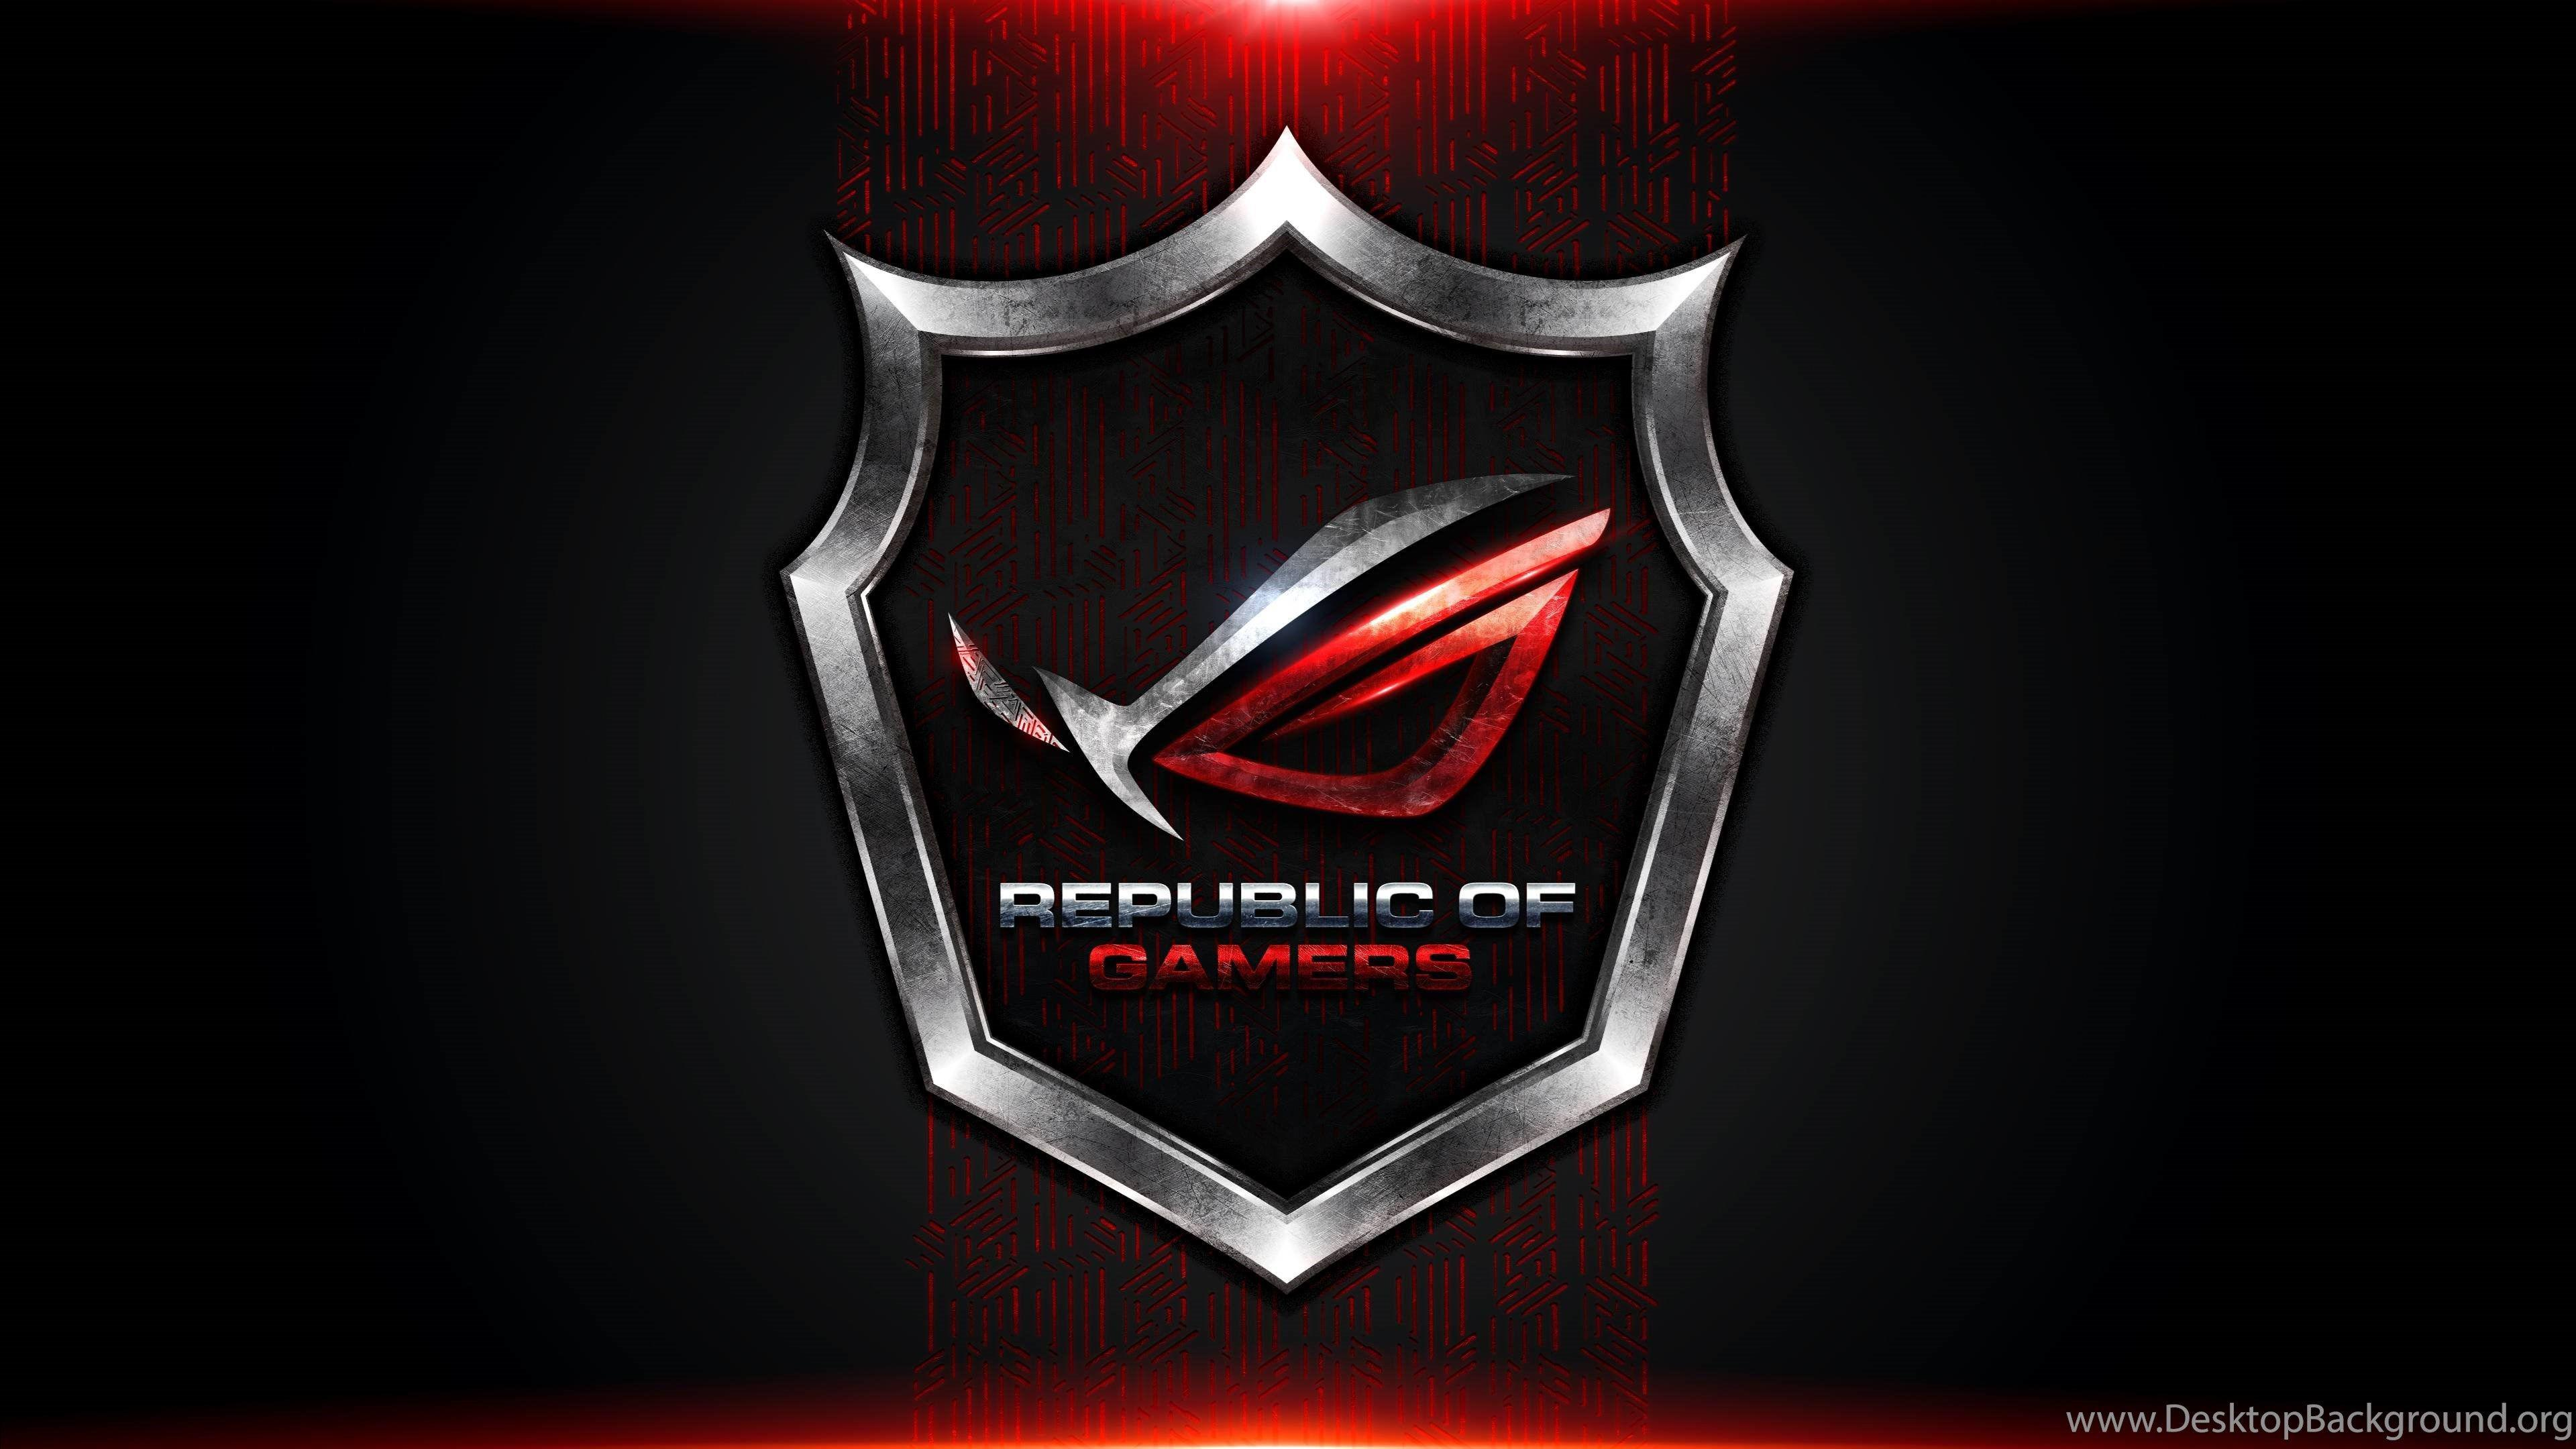 Asus Logo Wallpapers Download at